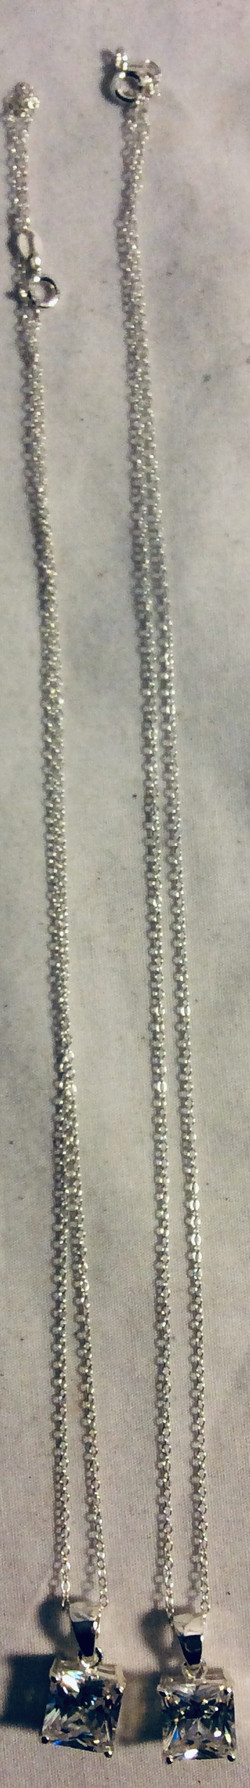 Necklace with very thin faux diamond pendant